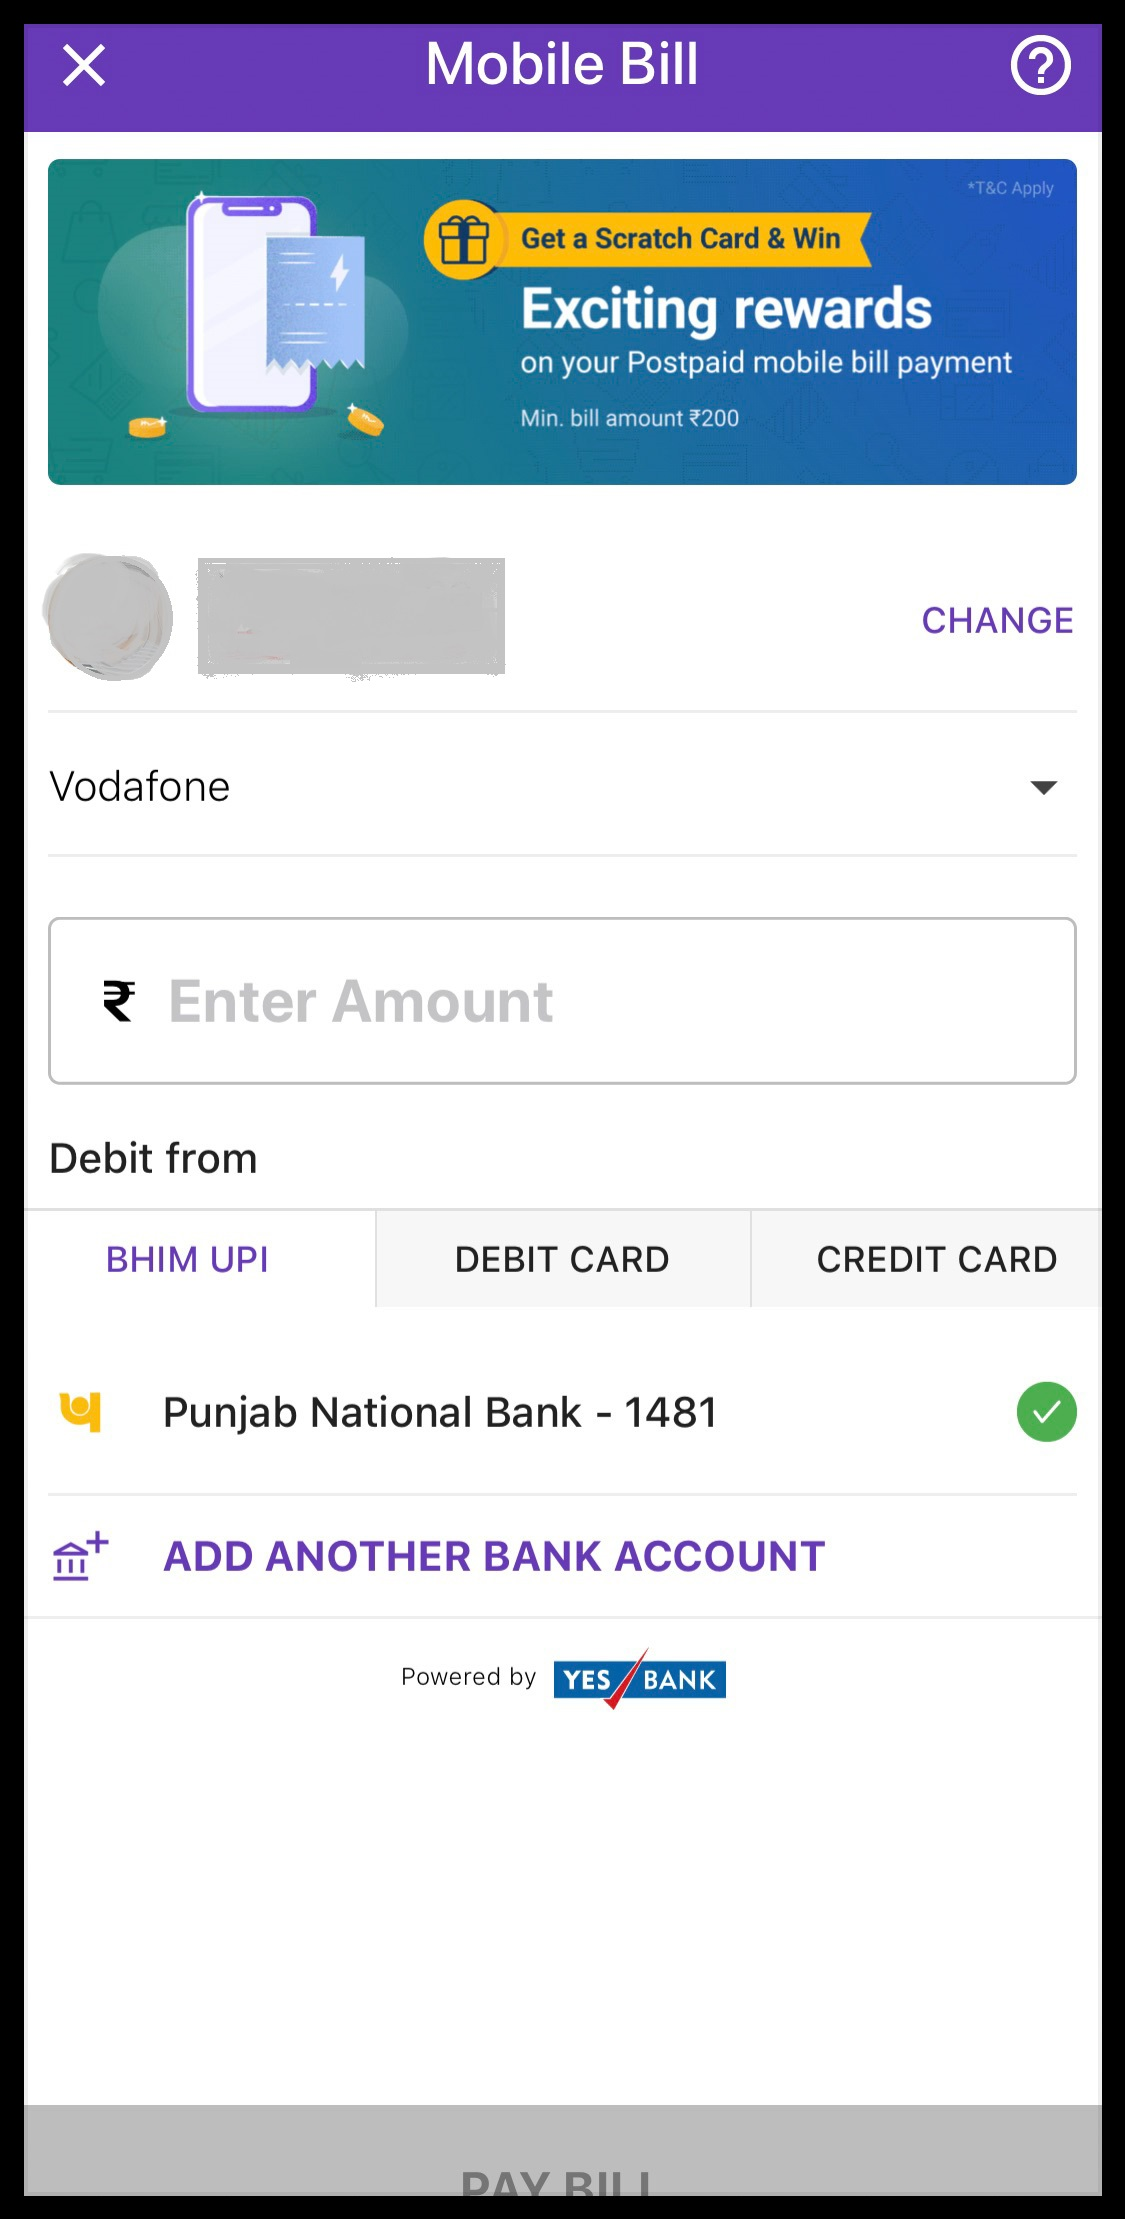 Mobile Bill on PhonePe